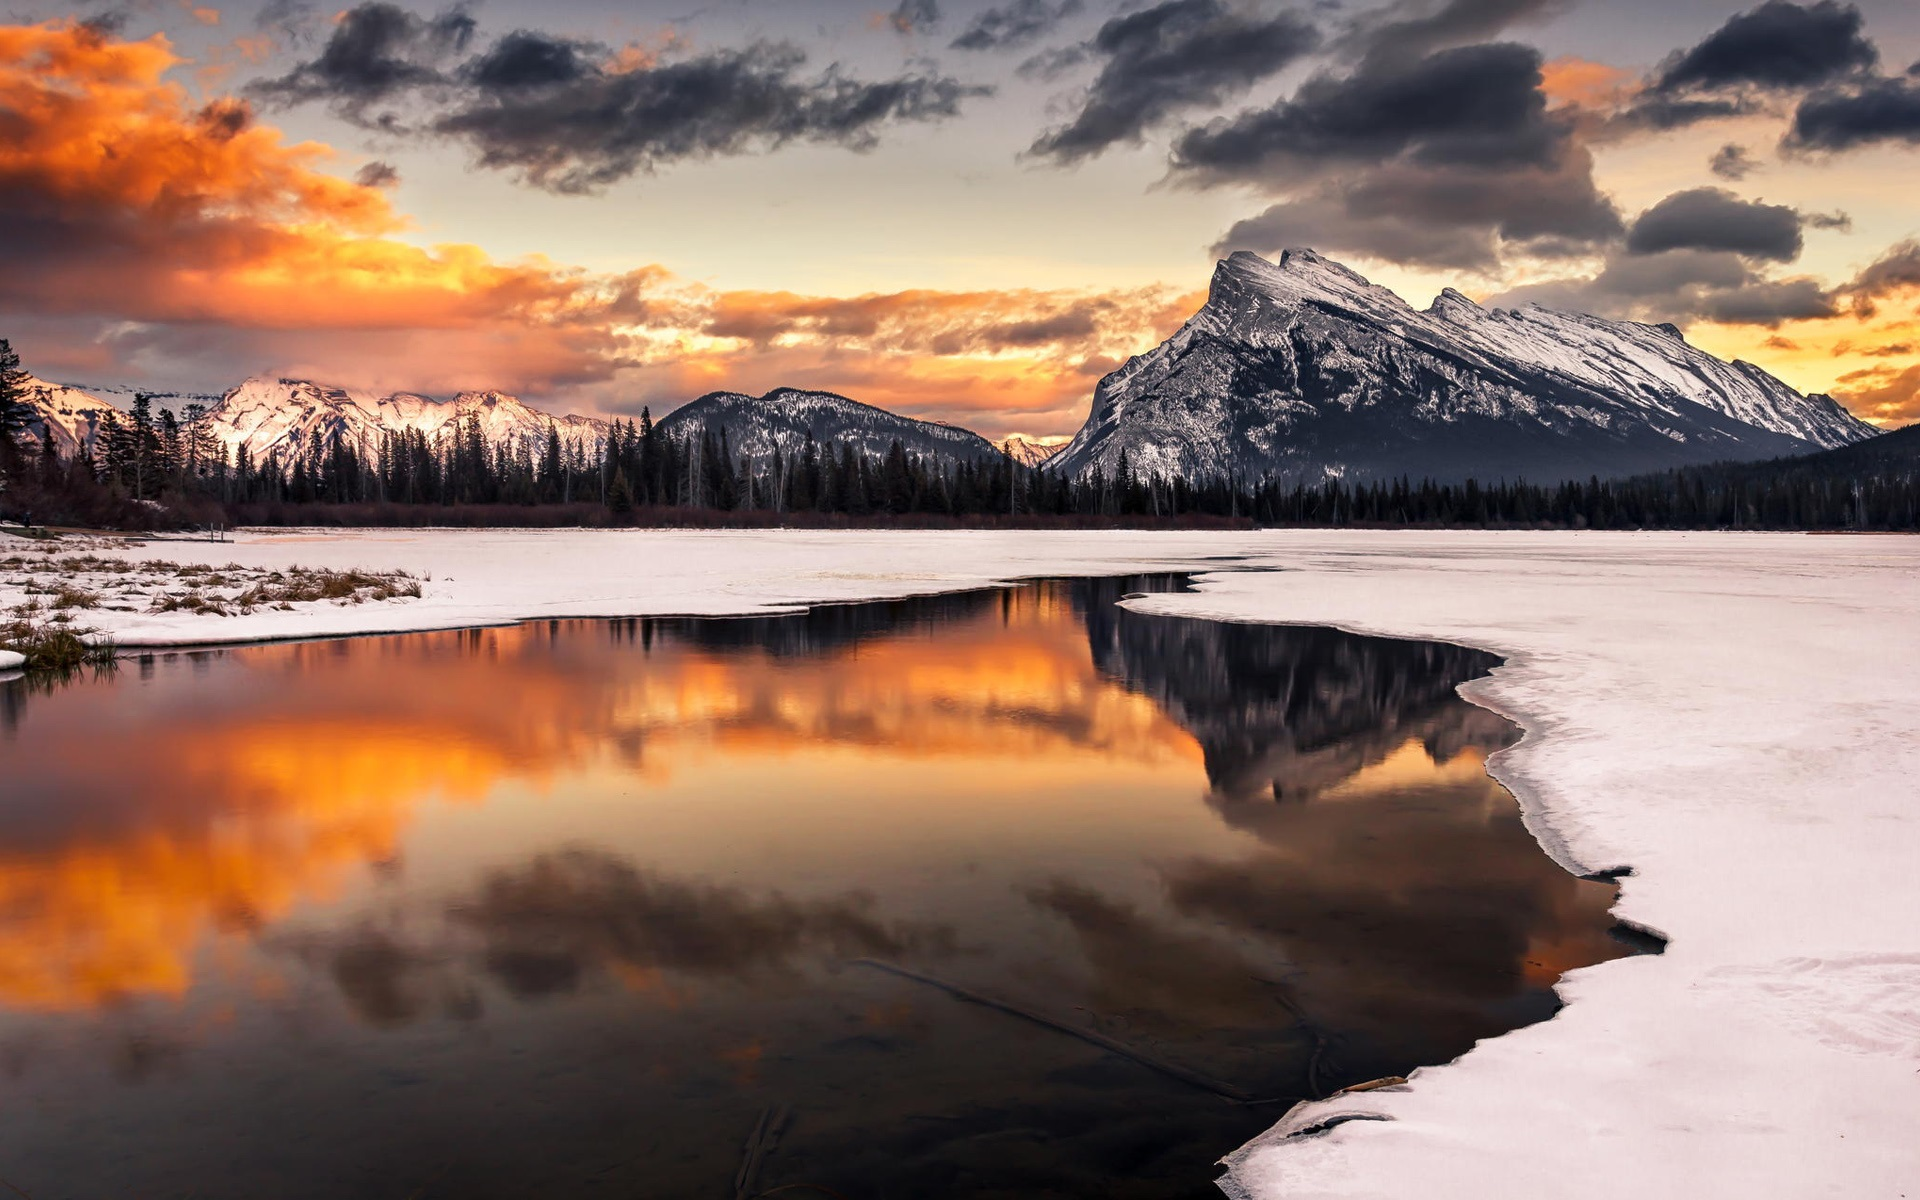 Wallpaper Winter Snow Sunset Mountain Lake Reflection Trees